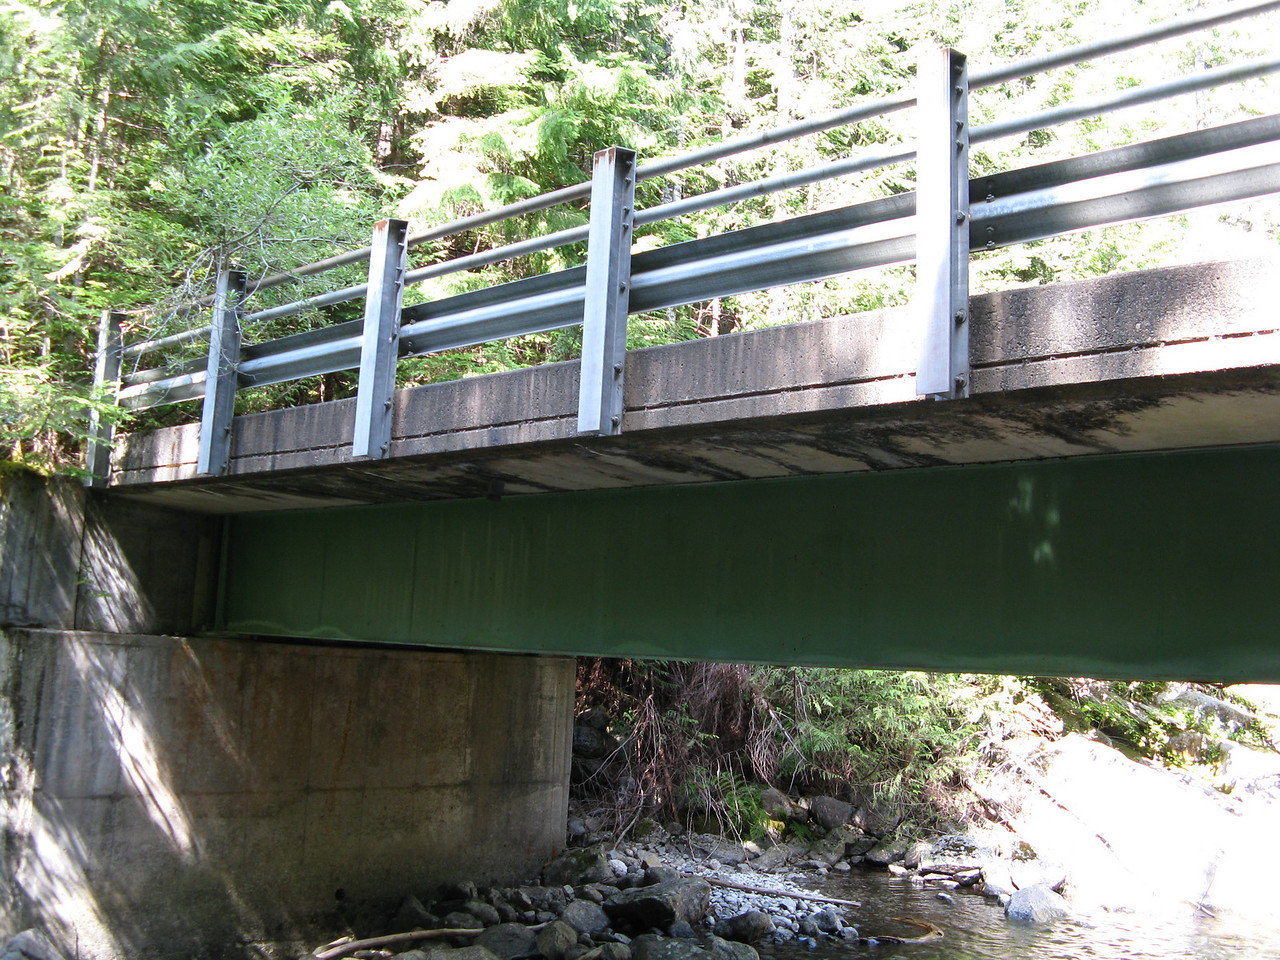 An incongruous sight:  a heavily built car bridge in the middle of nowhere on a hiking trail.